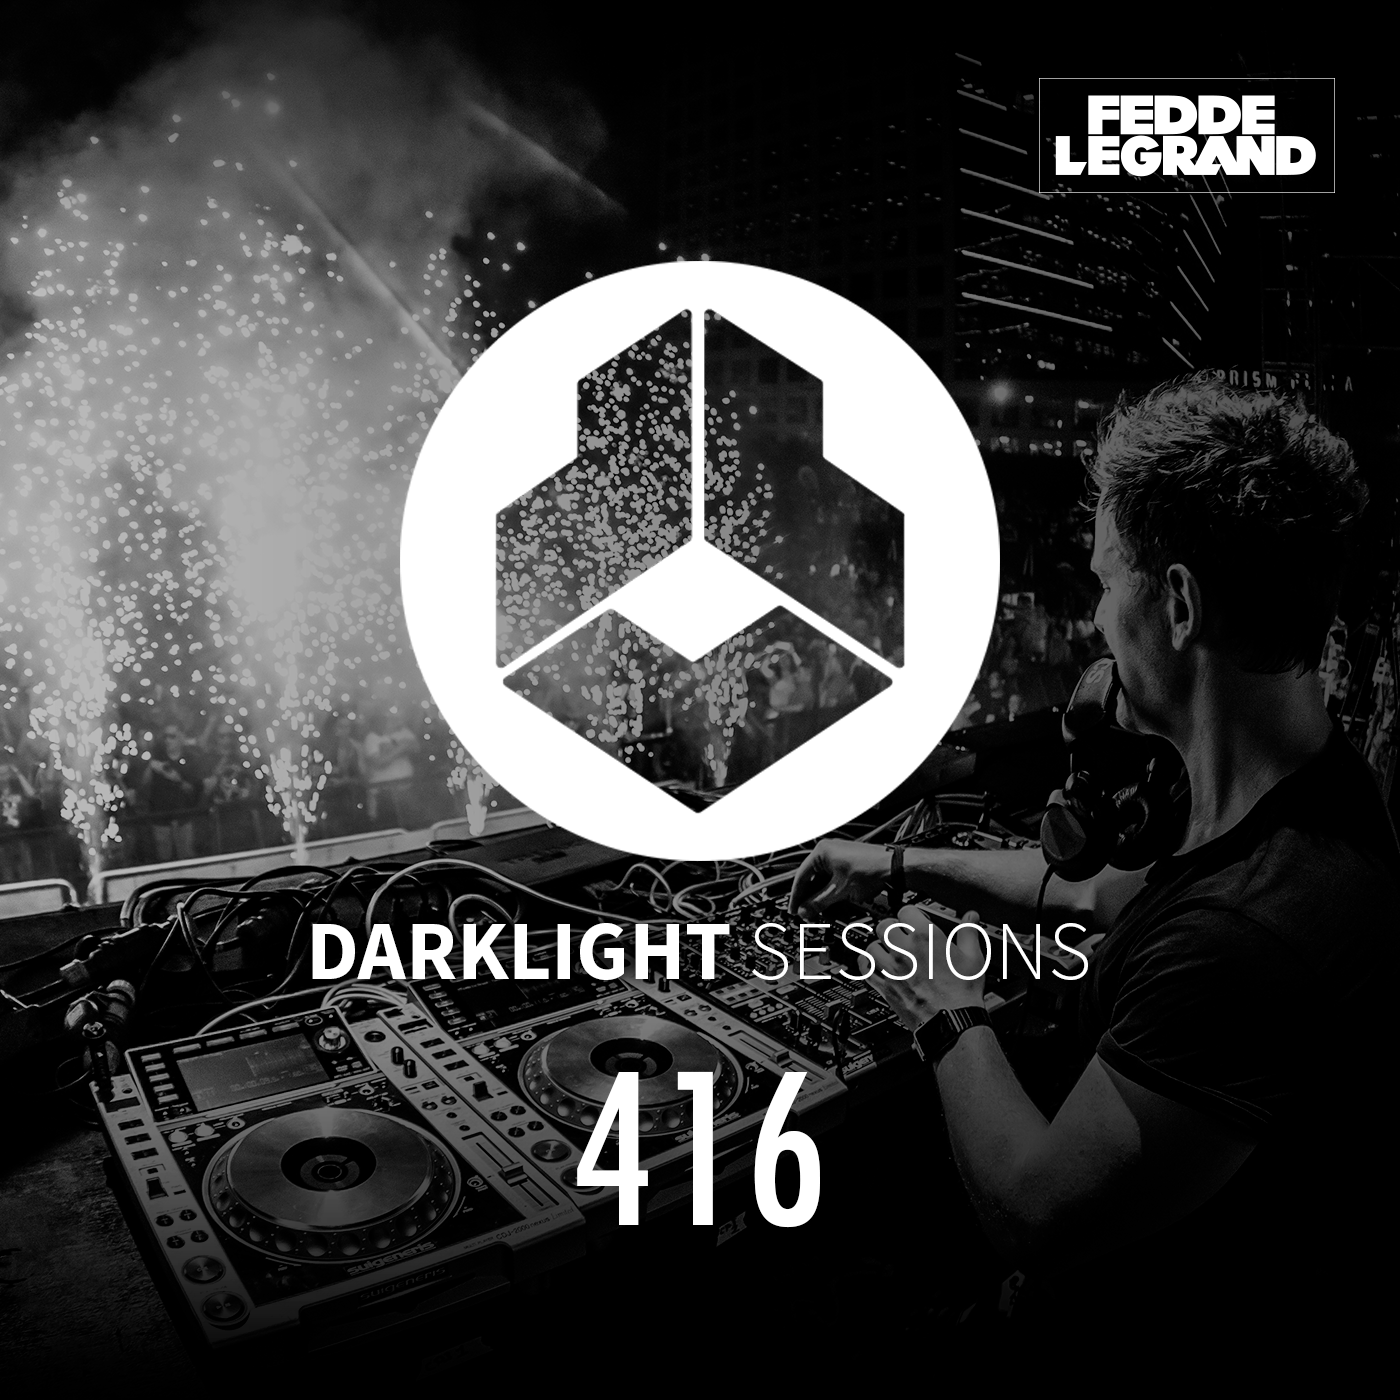 Darklight Sessions 416